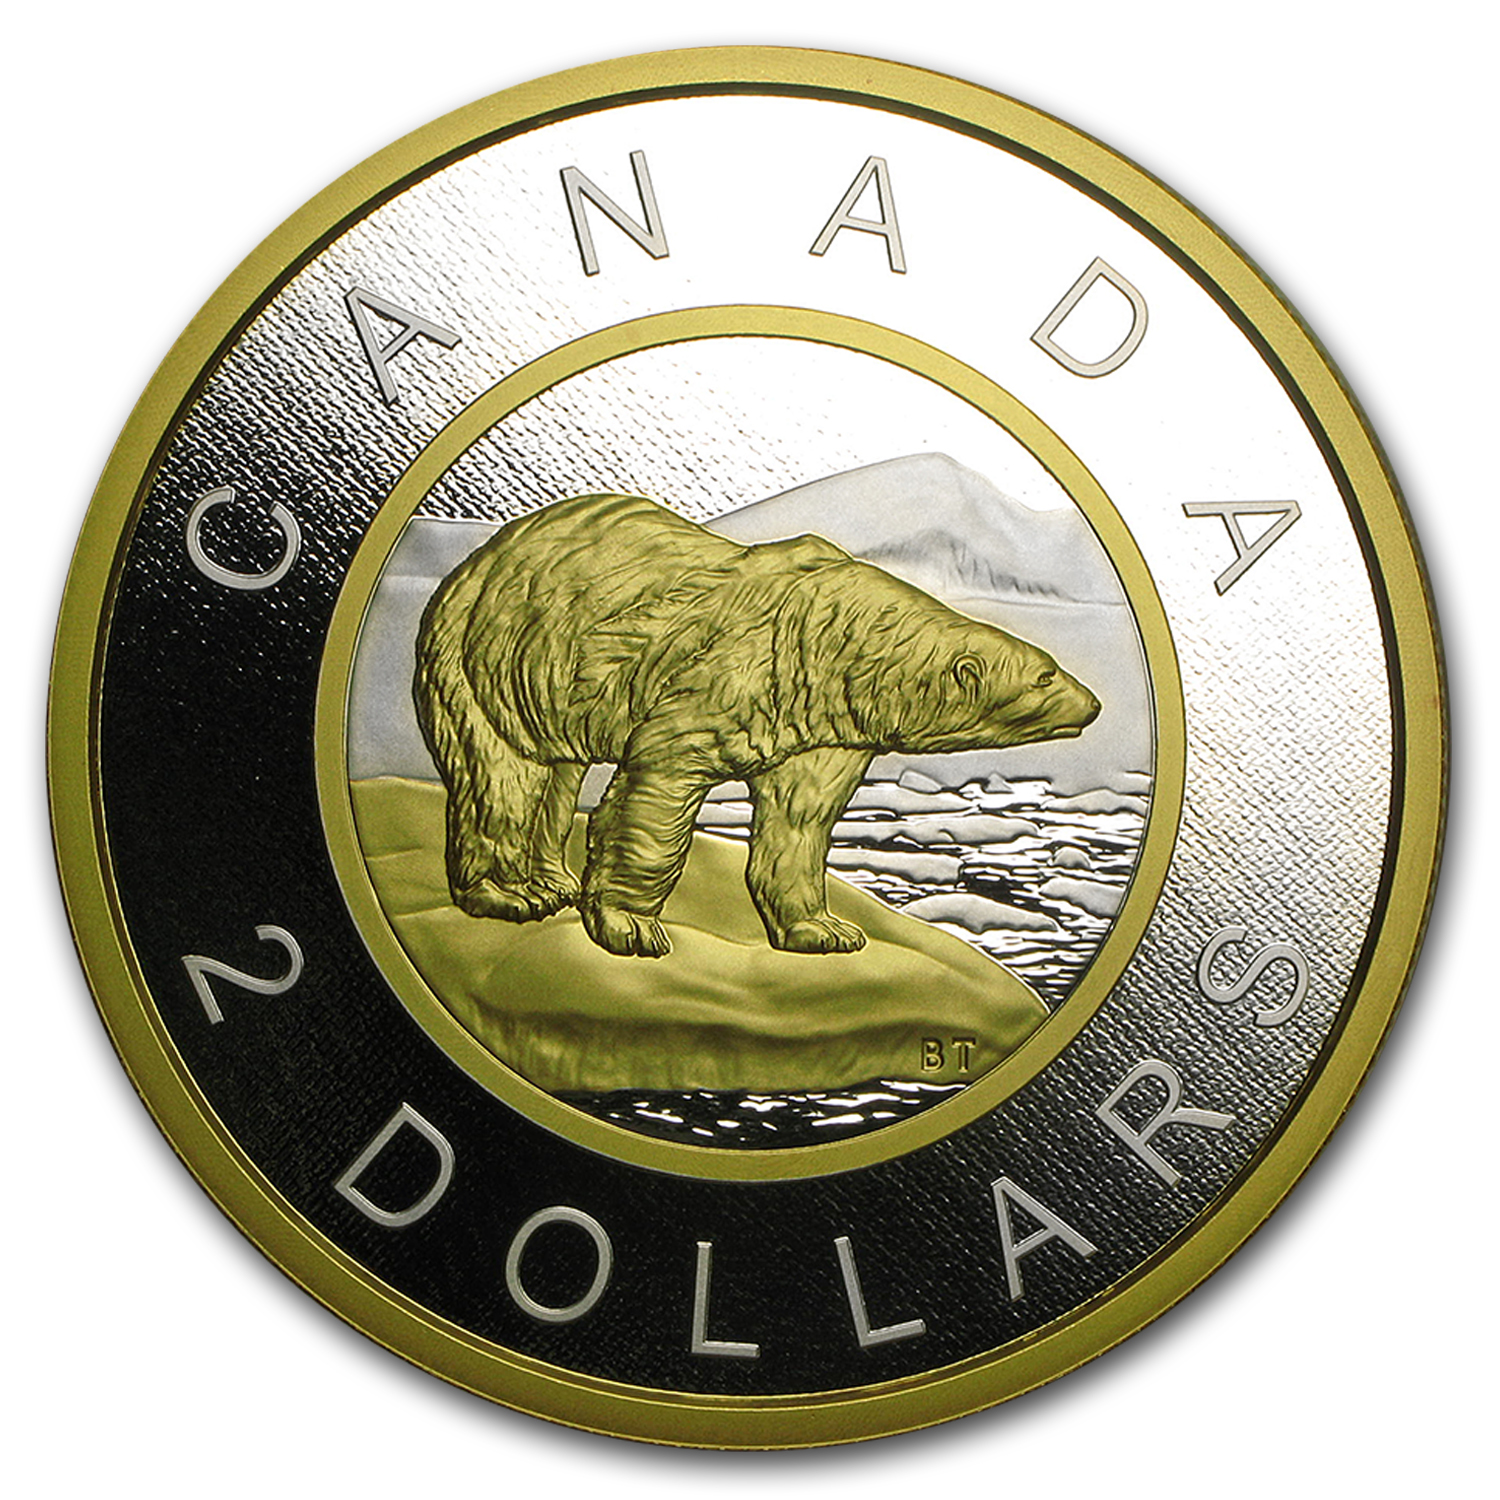 2015 Canada 5oz Proof Silver Polar Bear Big Coin Series ($2 Coin)